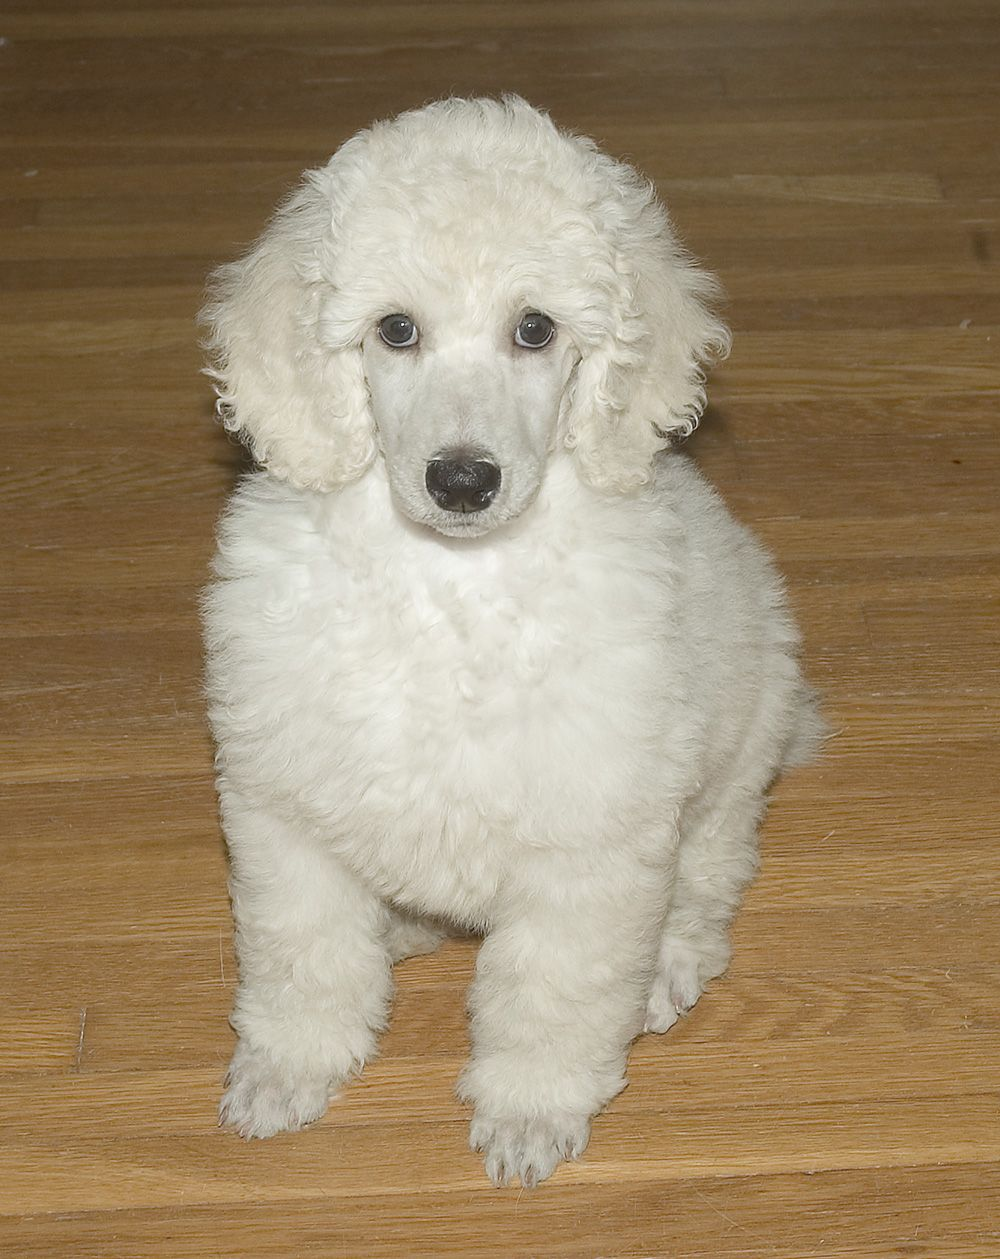 Baby Standard Poodle Too Baby Dog Poodle White Adorable